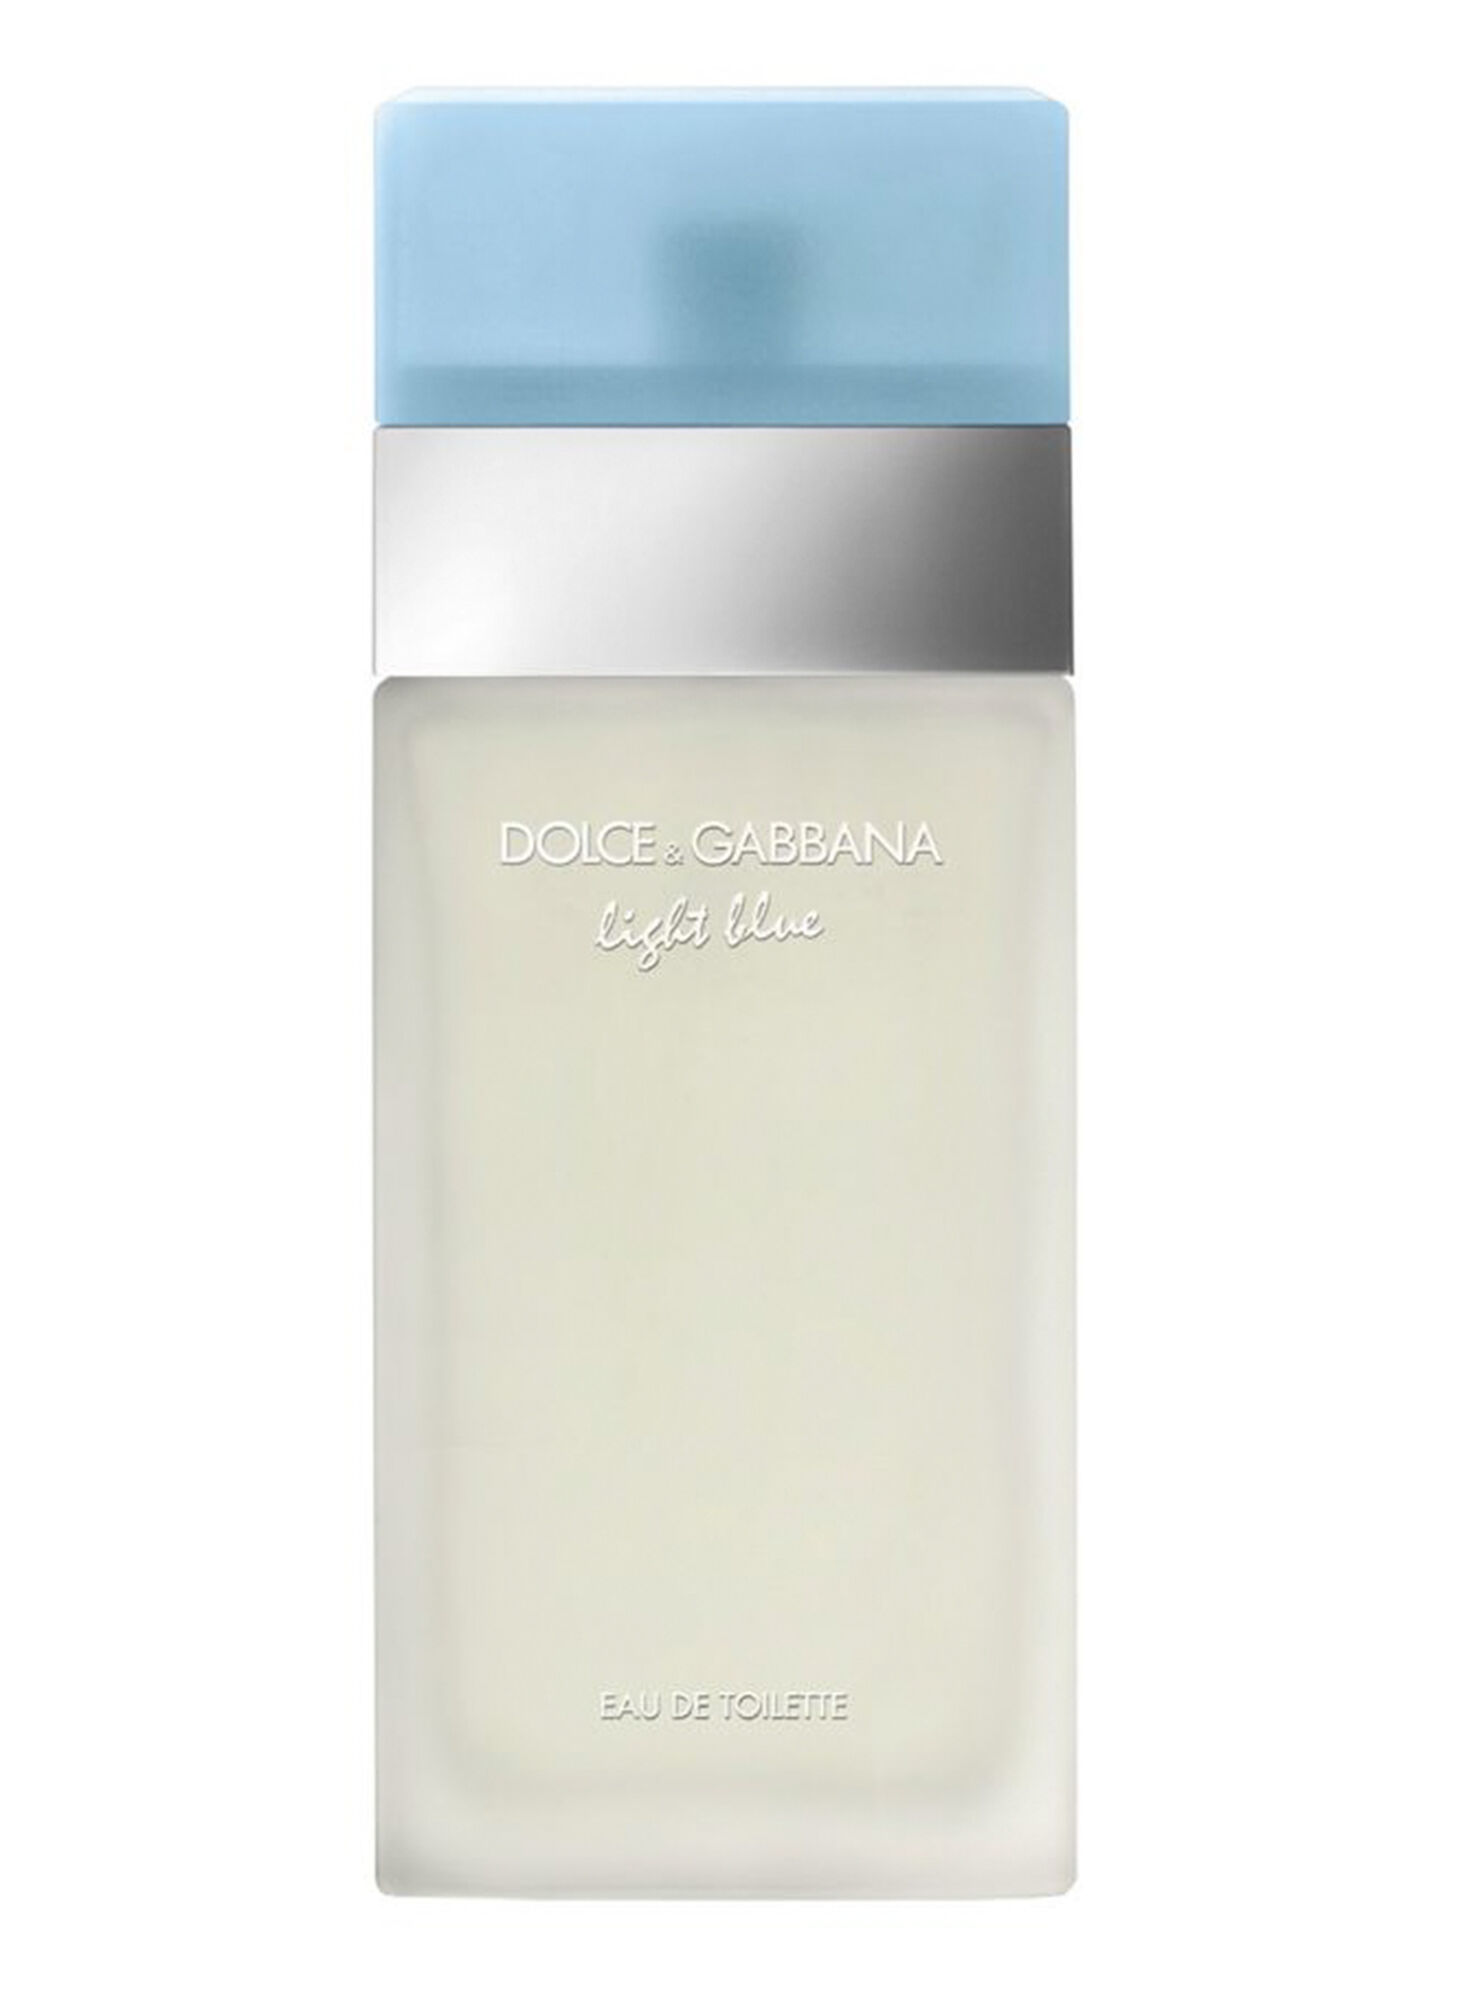 Perfume Dolce Amp Gabbana Light Blue Edt 25 Ml Edici 243 N Limitada En Perfumes Mujer Paris